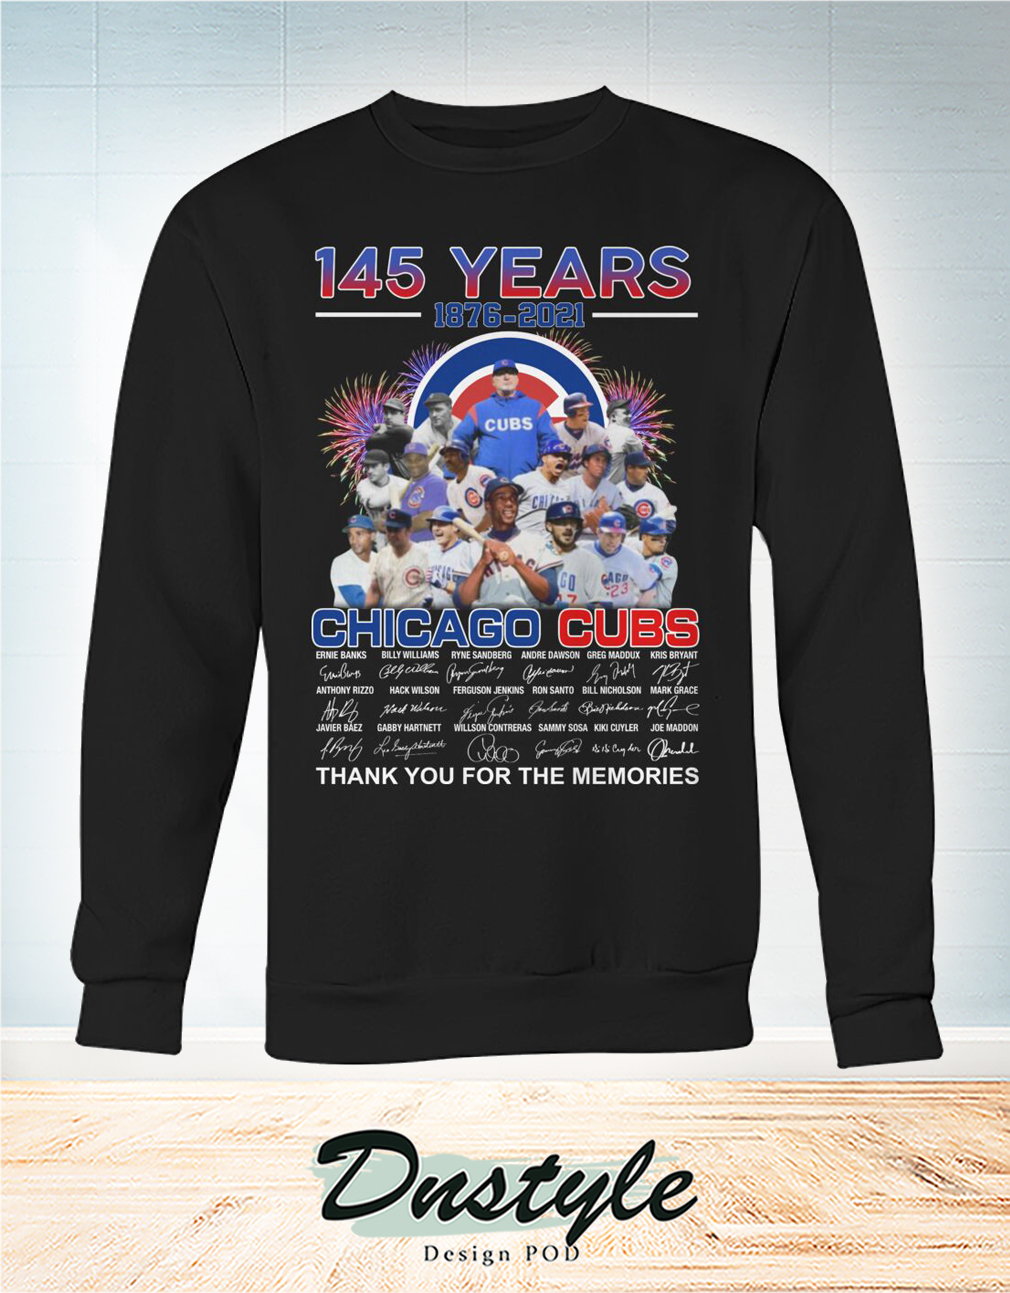 Chicago cubs 145 years signature thank you for the memories sweatshirt